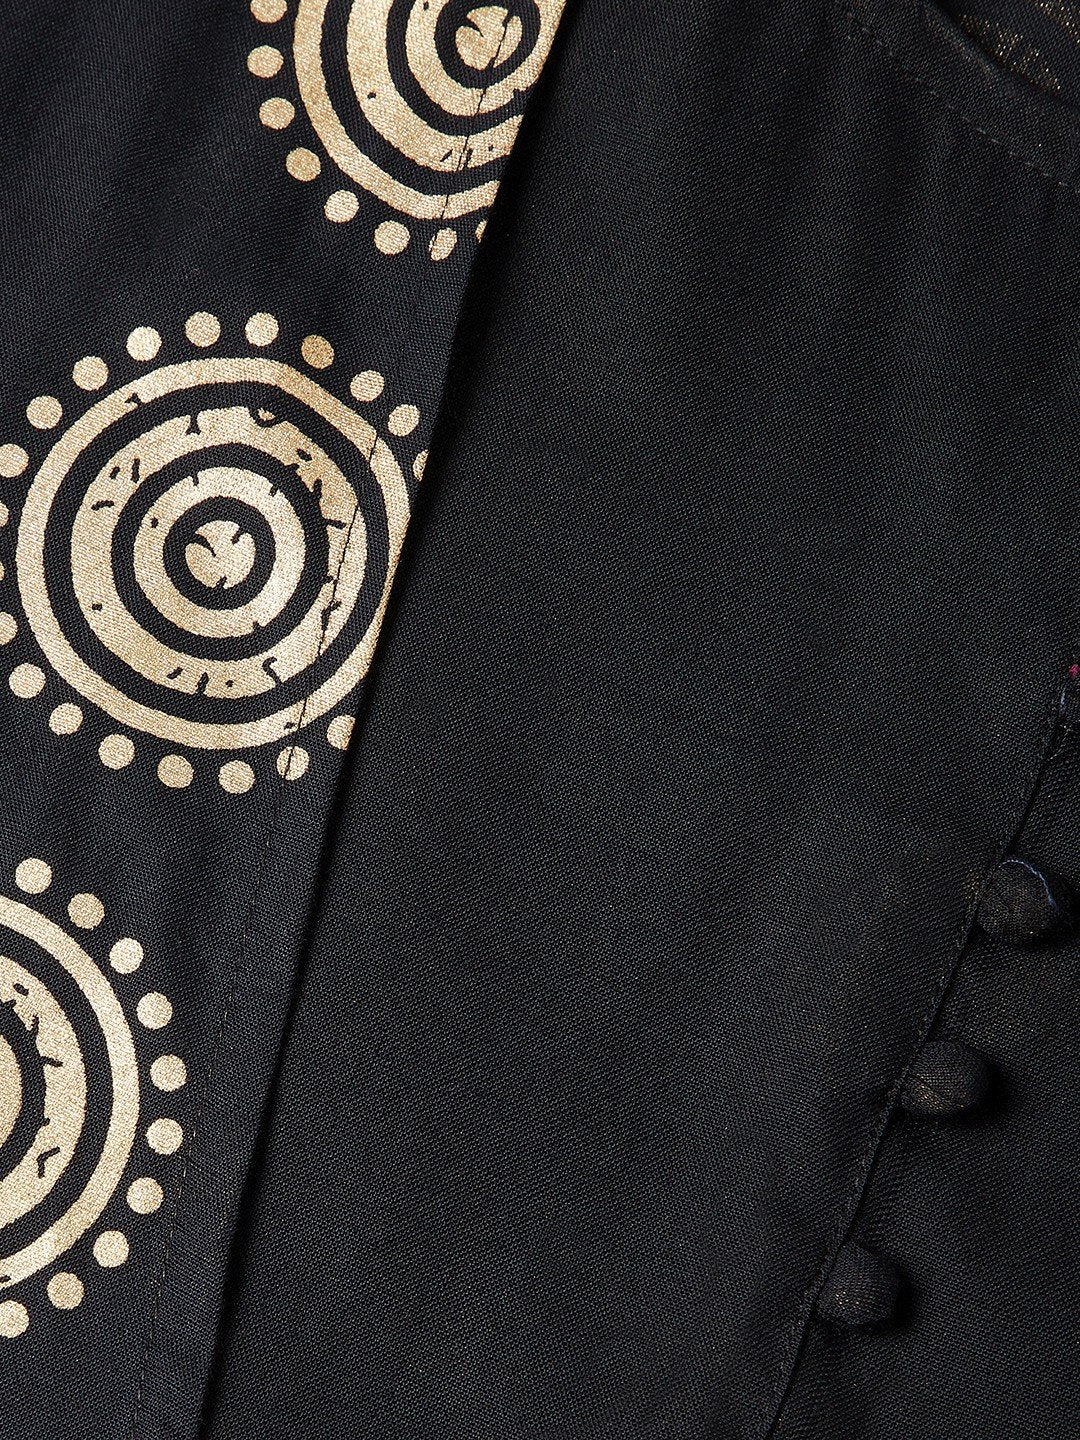 Floor Length Kurta With Jacket In Black & Gold